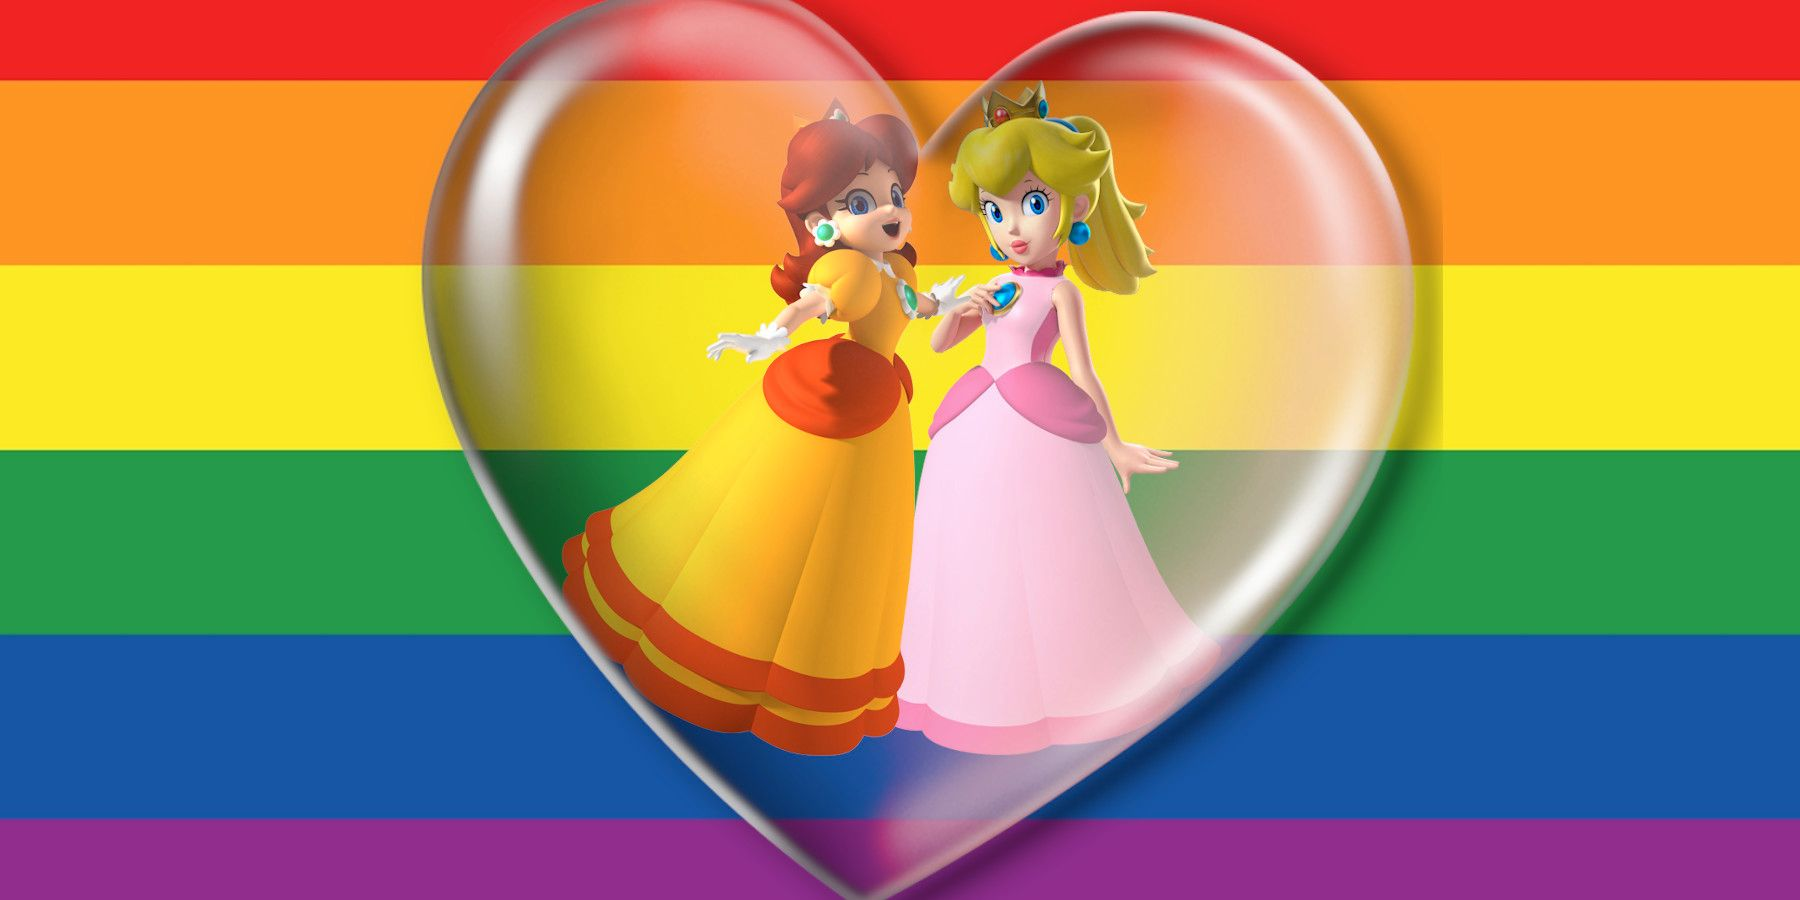 It's Time For Peach And Daisy To Date Already